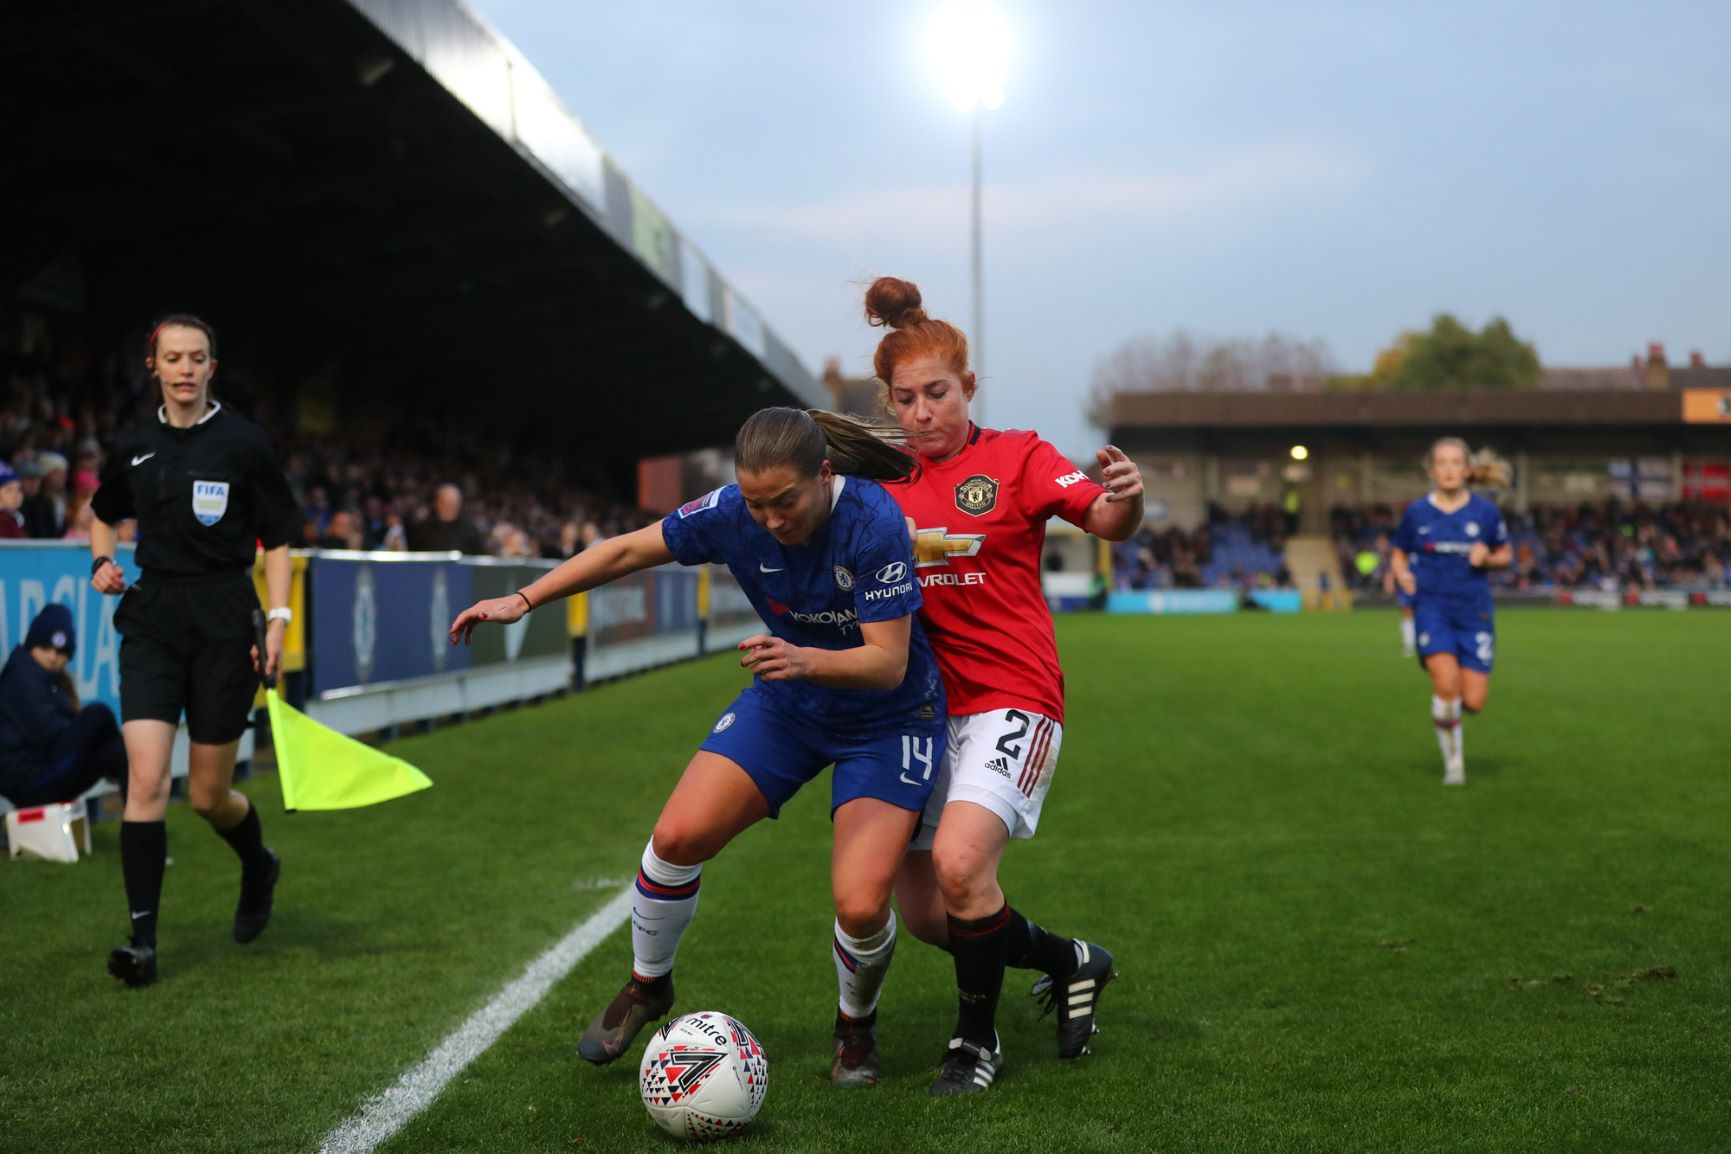 Chelsea's Fran Kirby won a penalty